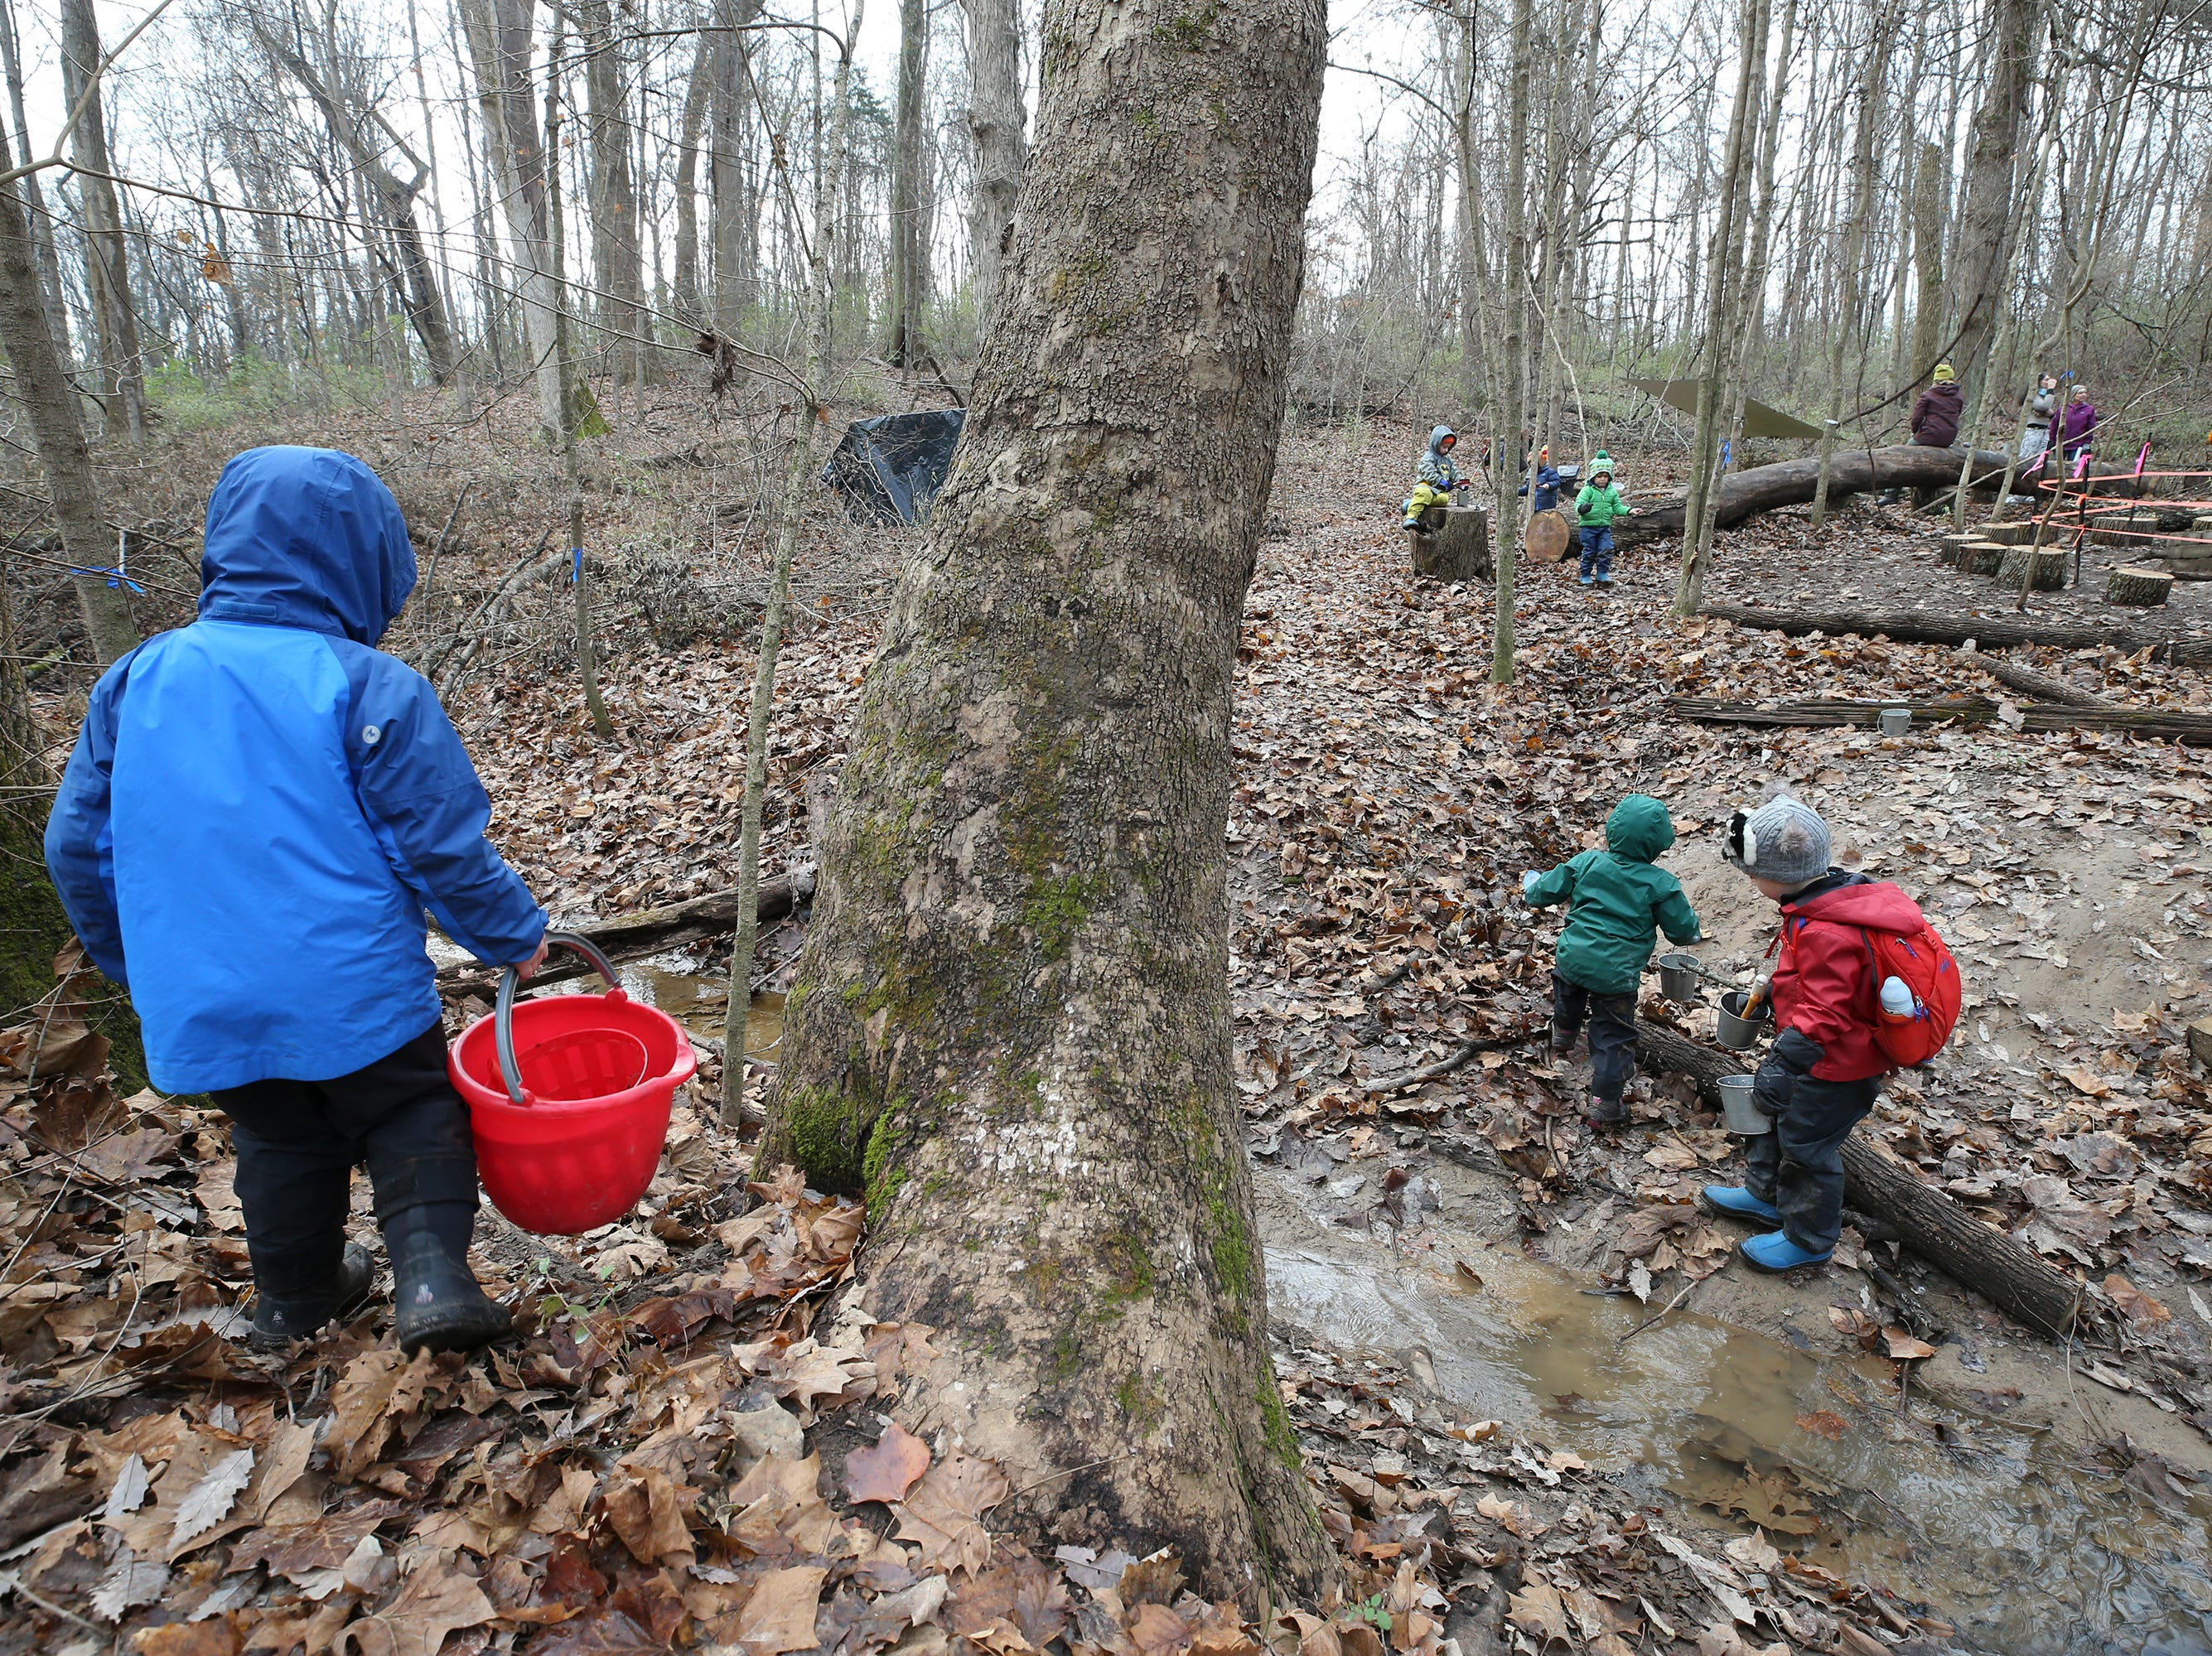 Students play in the woods by a stream at Thrive Forest School at Creasey Mahan Nature Preserve.November 19, 2018